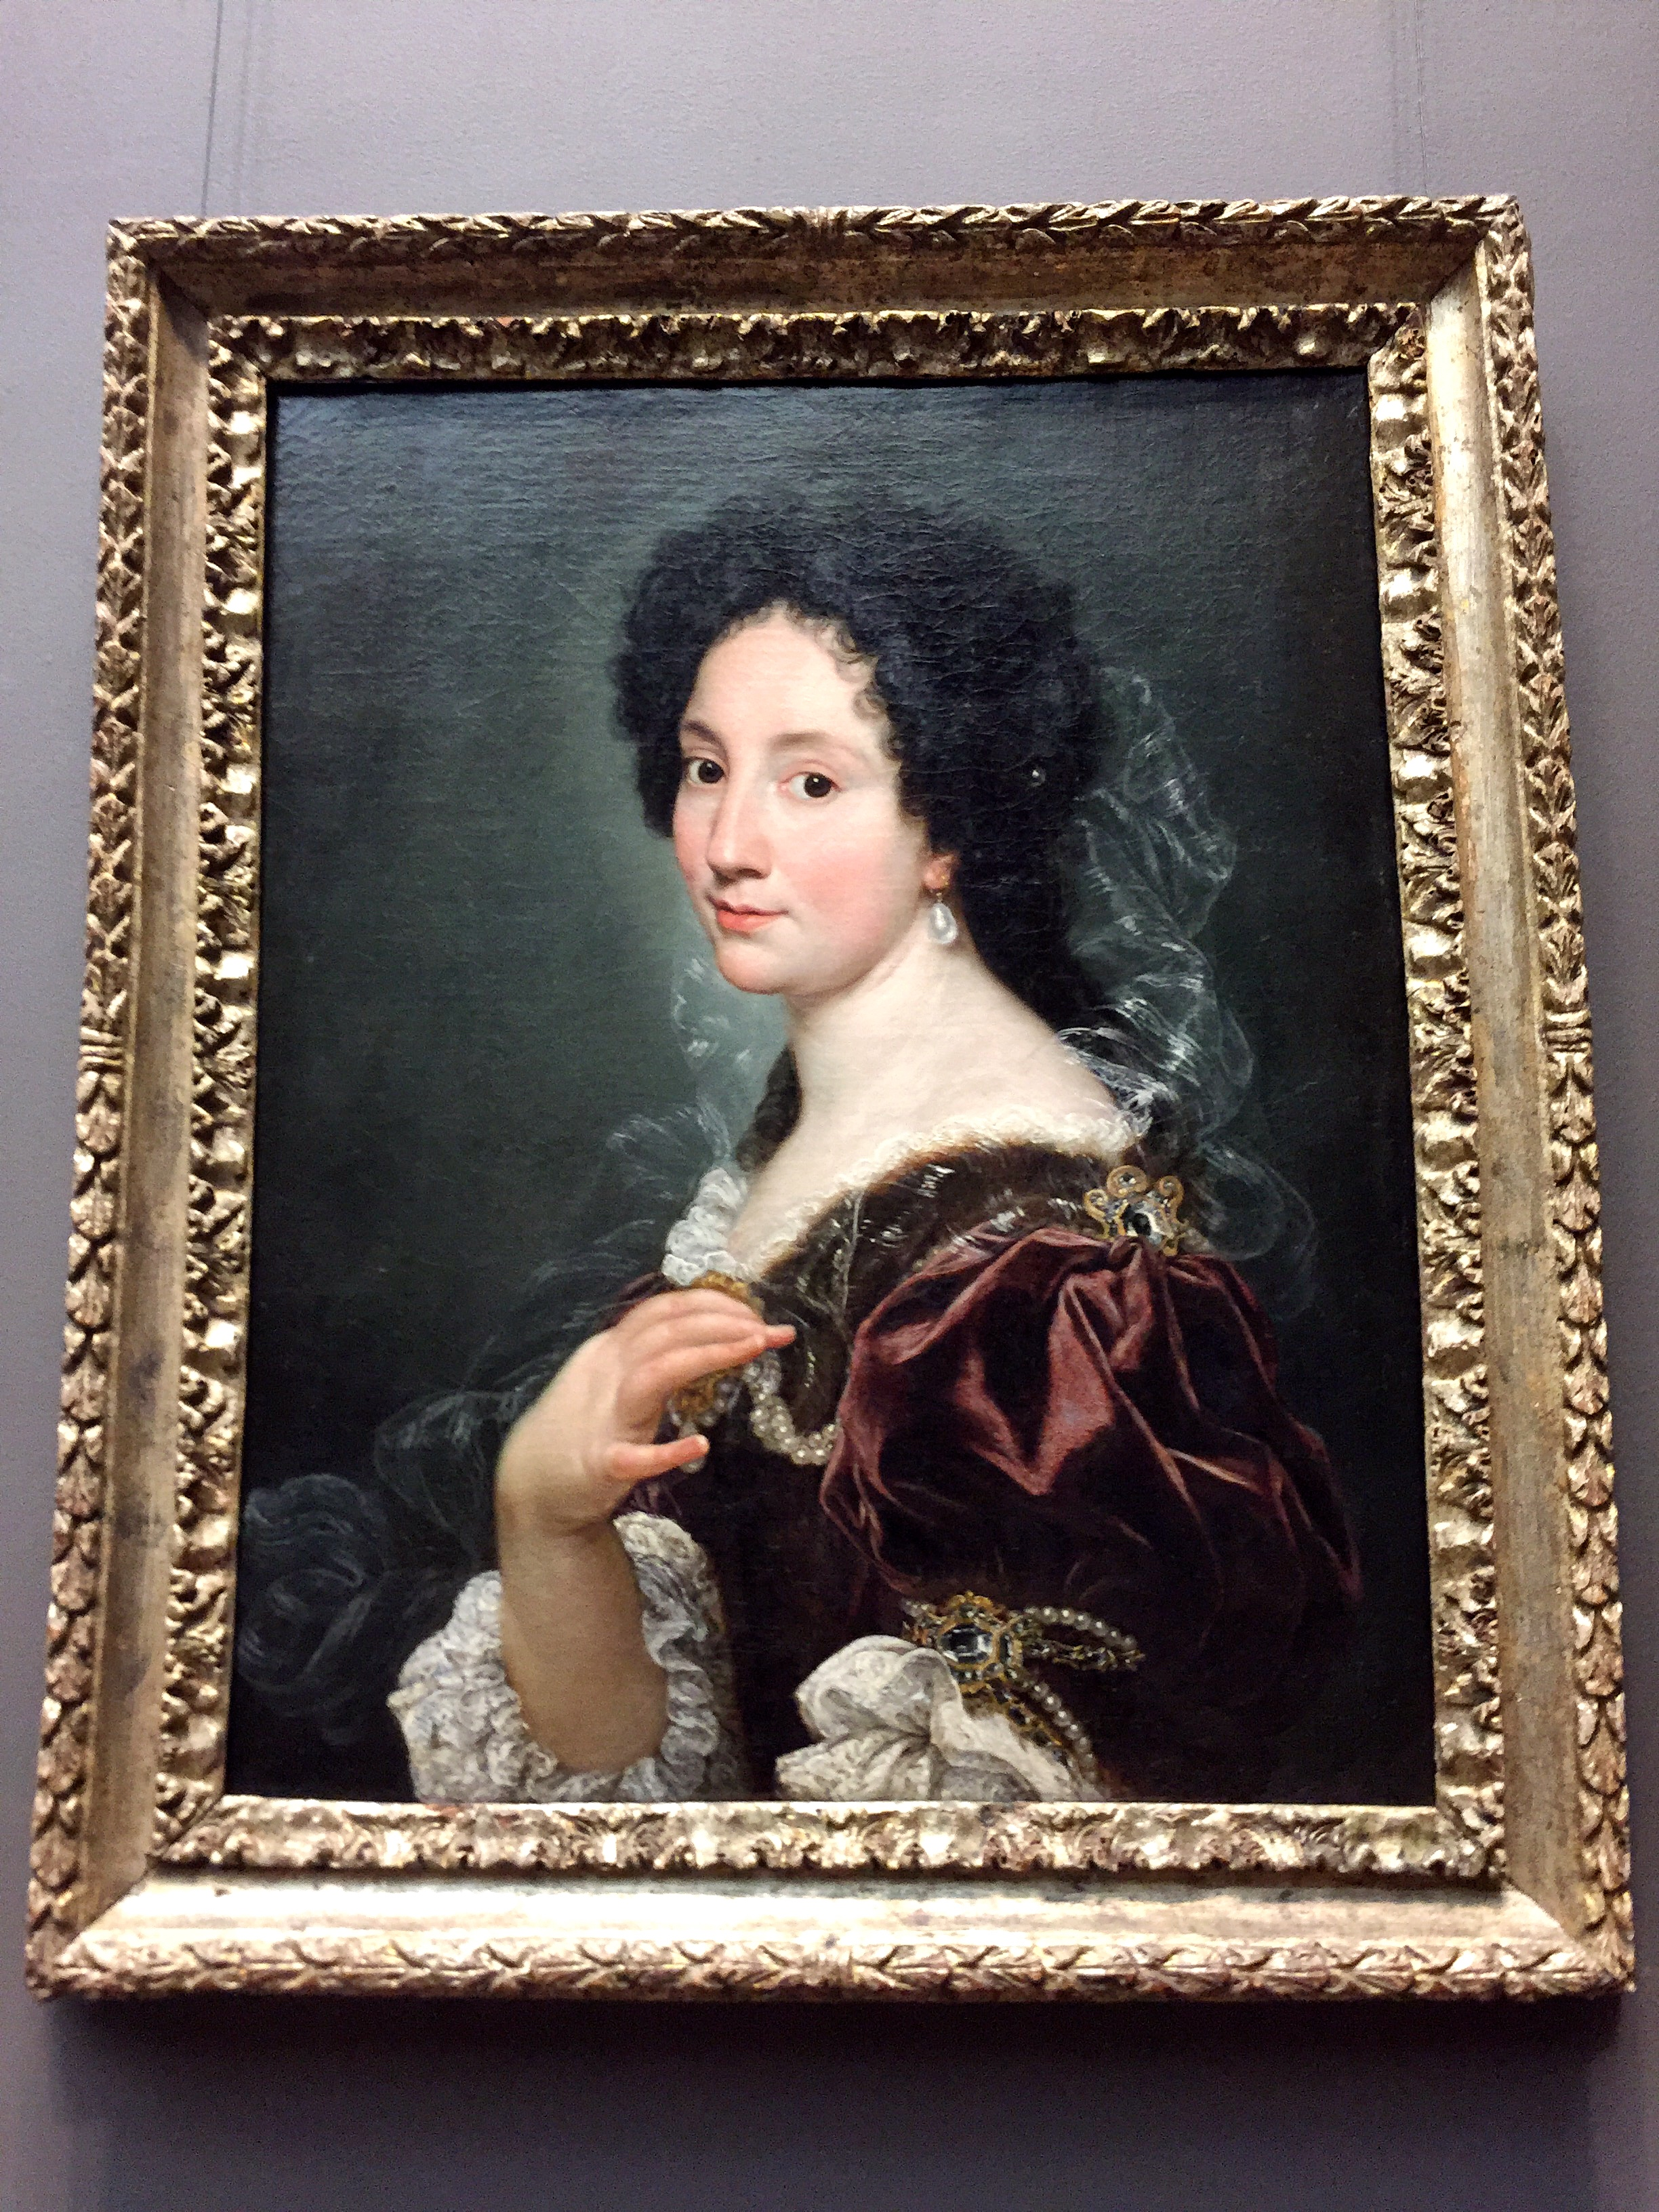 Portrait of a Woman .  Giovanni Battista Gaulli (Il Baciccio)  (Italian Genoa 1639-1709 Rome) ca. 1670s. Oil on canvas.